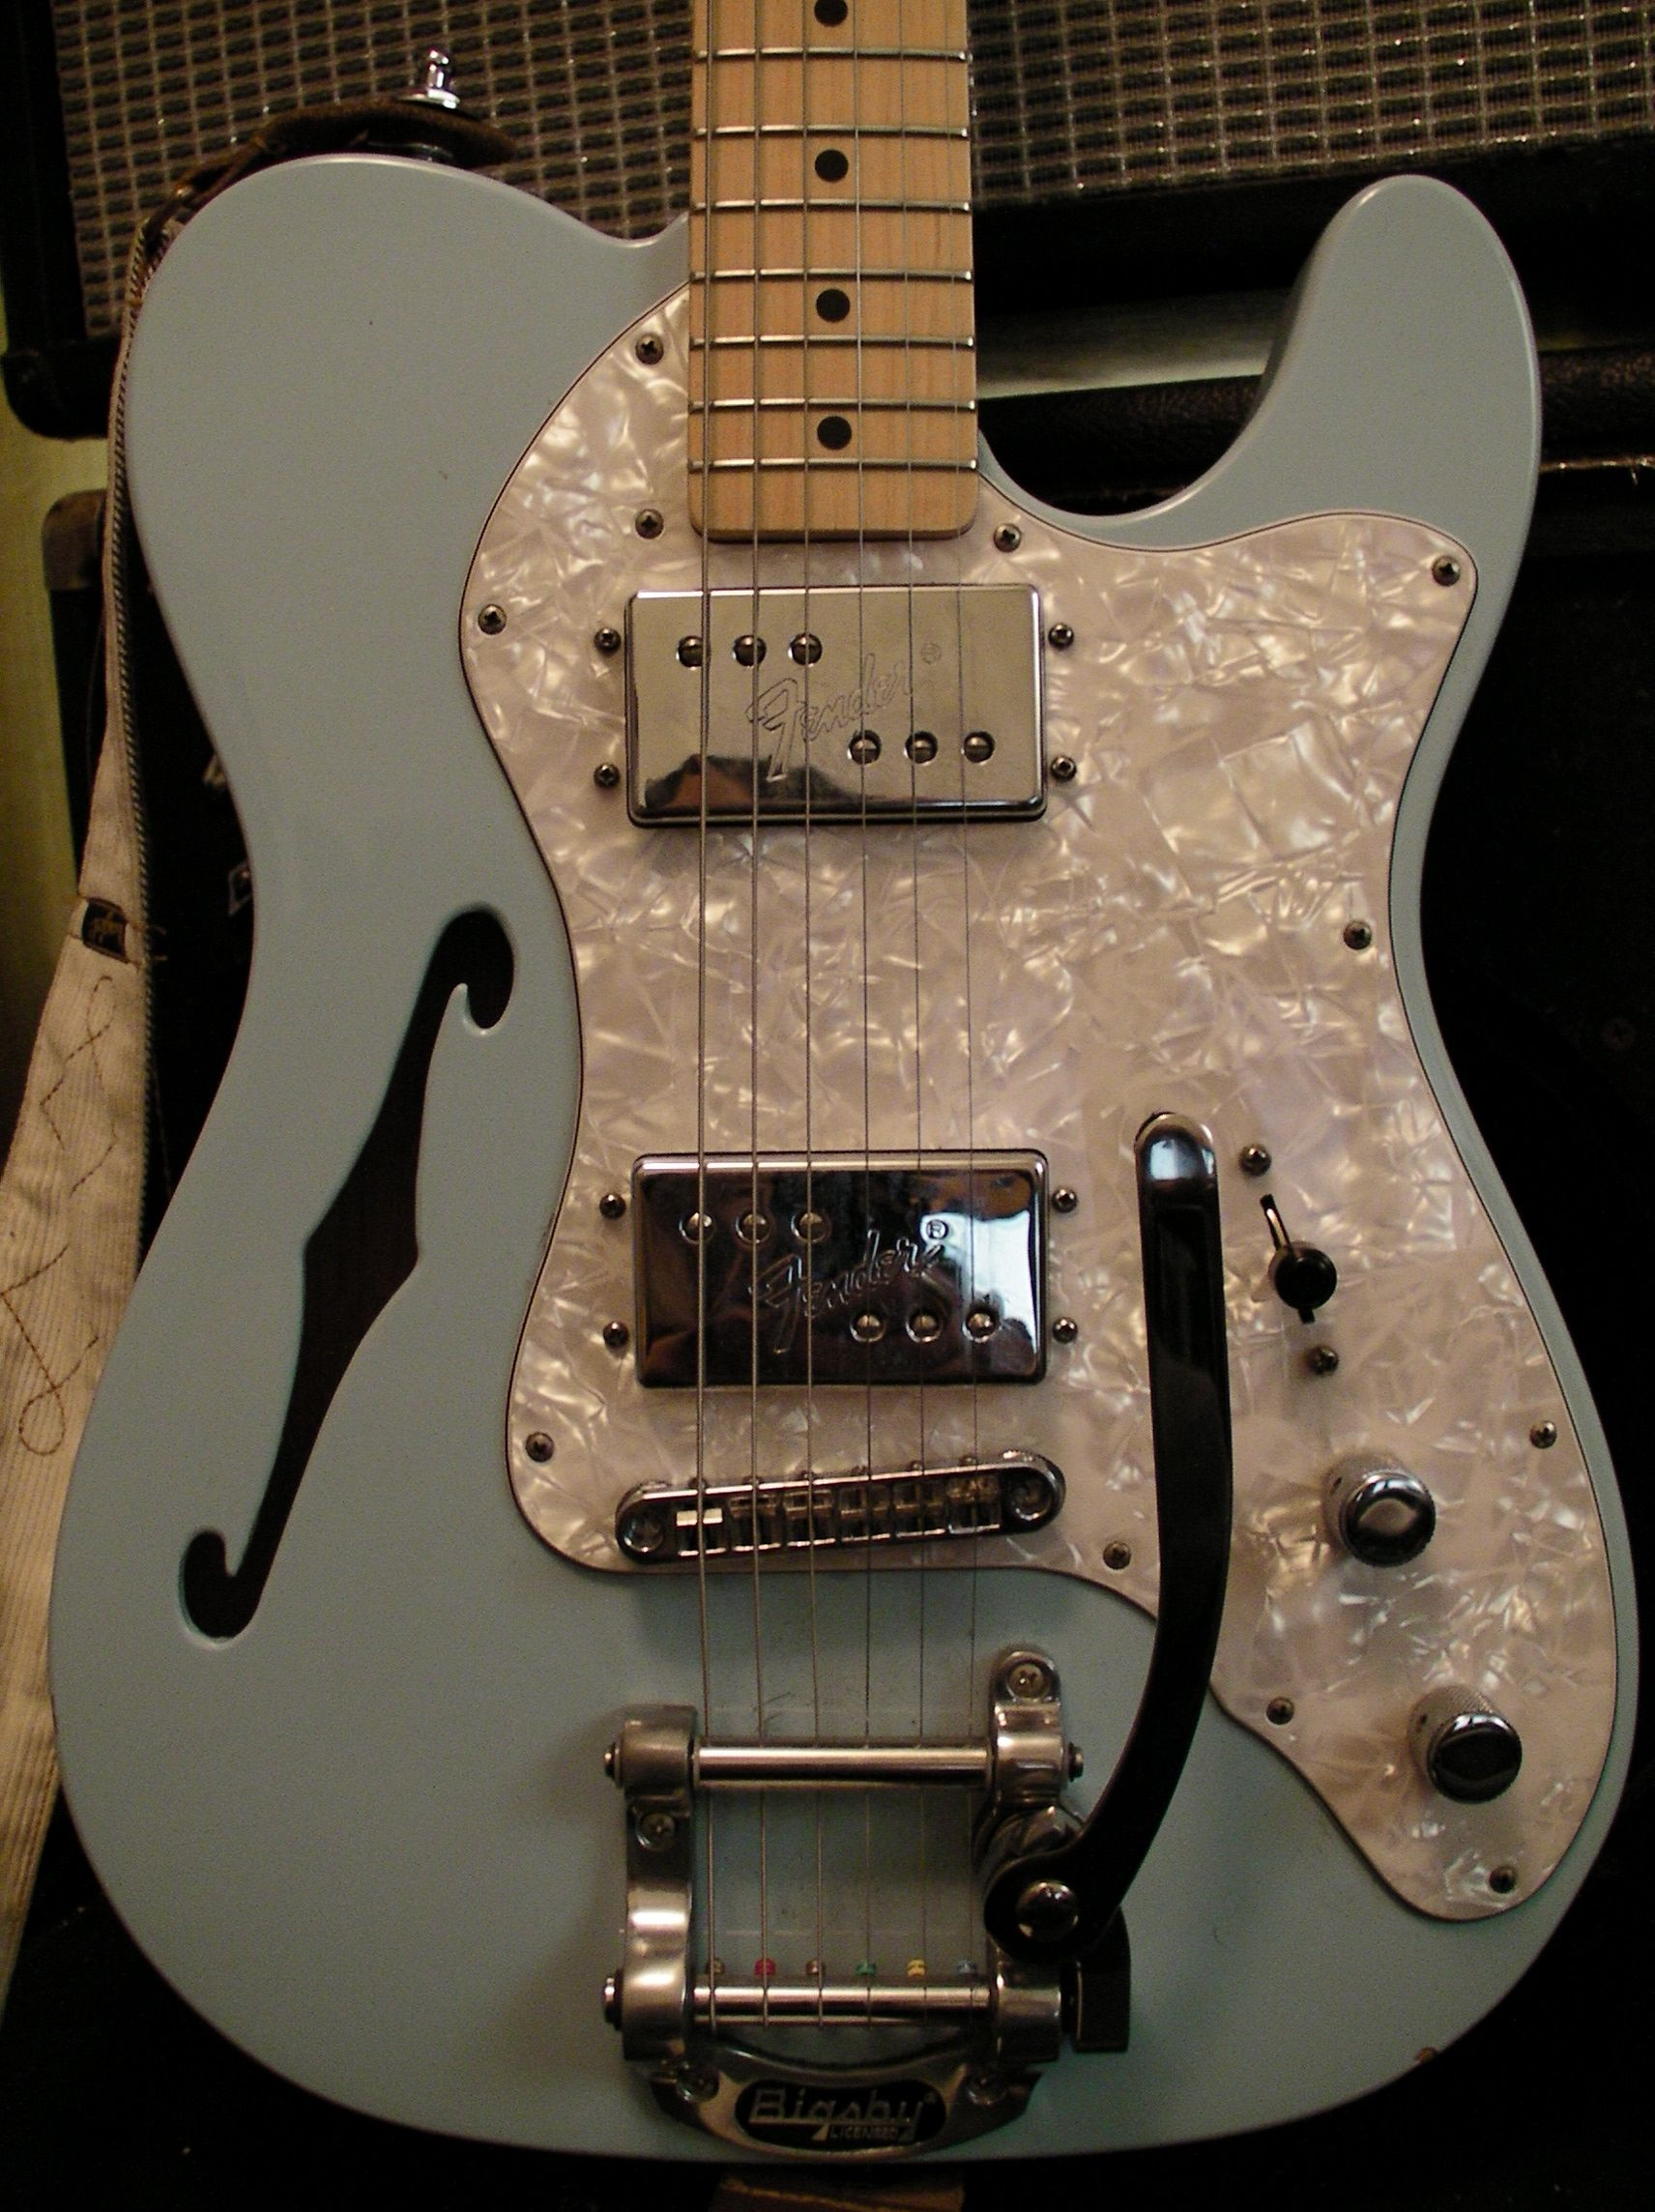 medium resolution of  72 telecaster thinline bigsby gorgeous surf blue or seafoam green lighter than a traditional